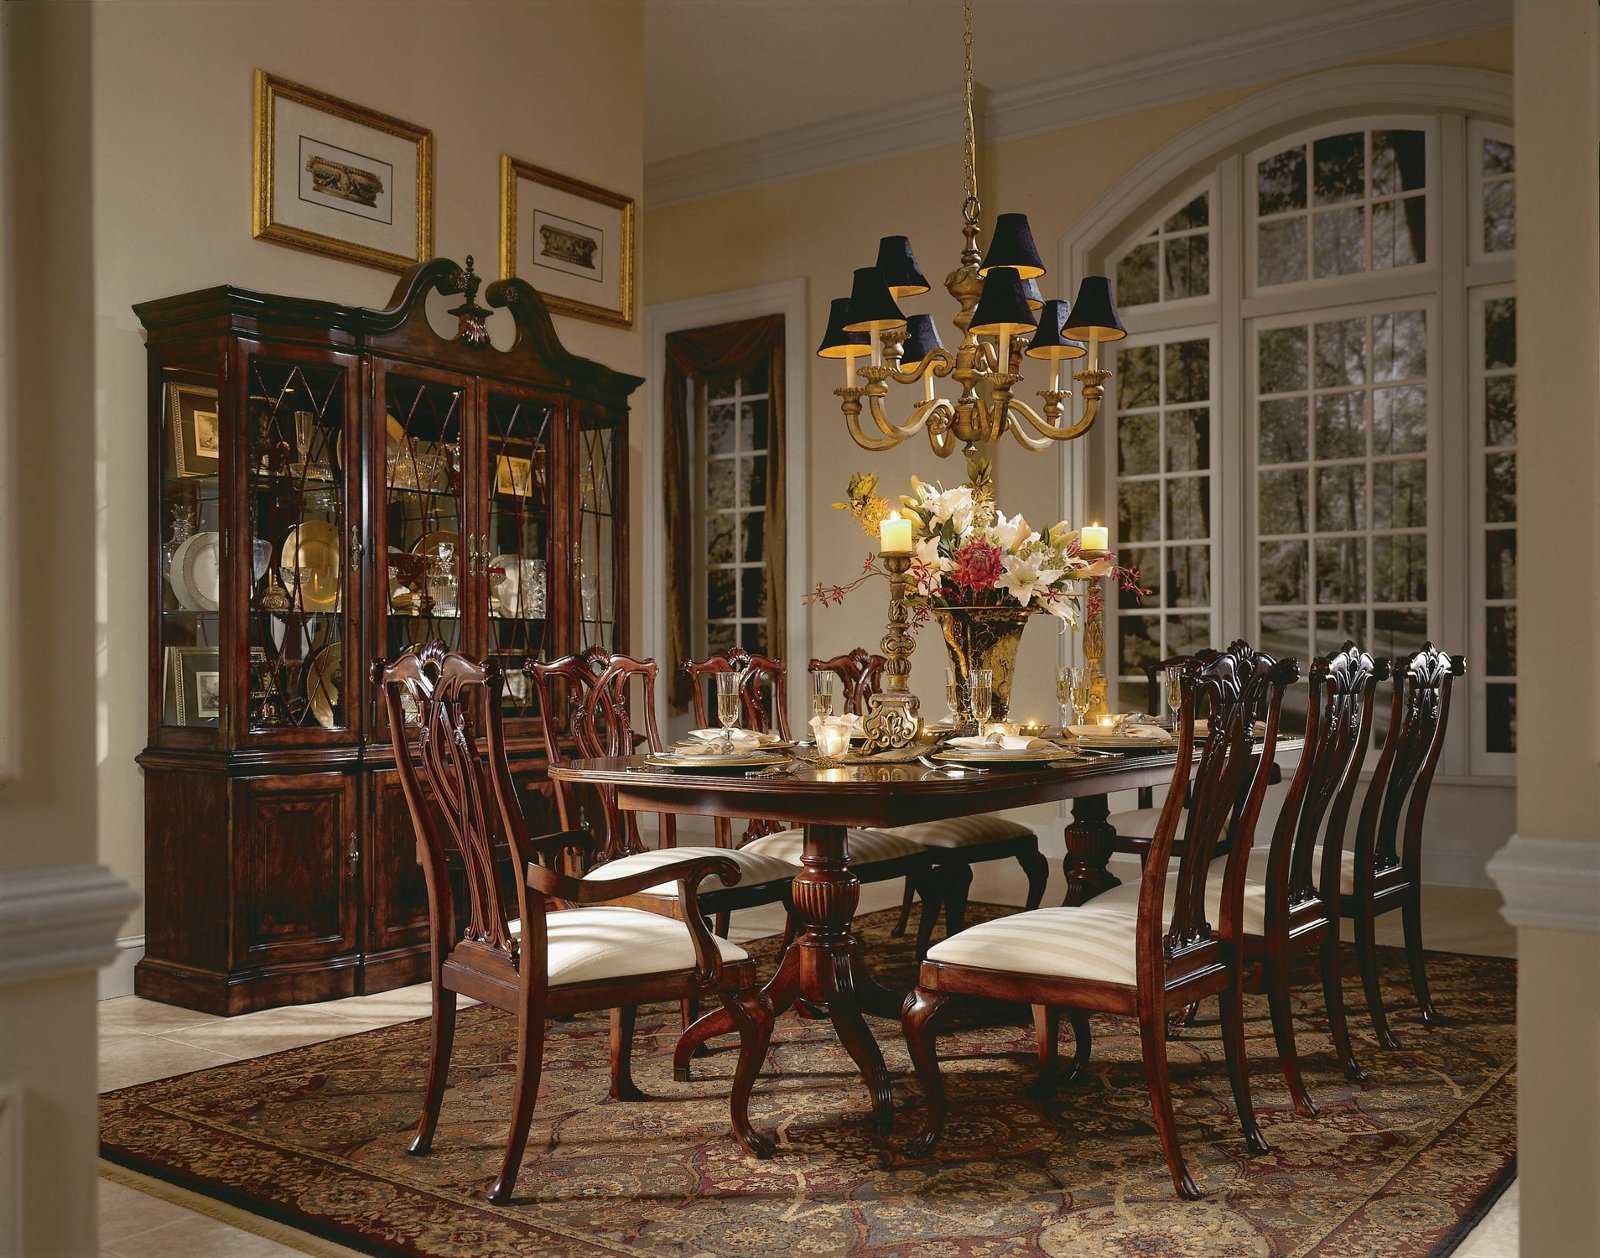 Queen Anne Dining Set In Dining Rooms Outlet with Queen Anne Living Room Sets